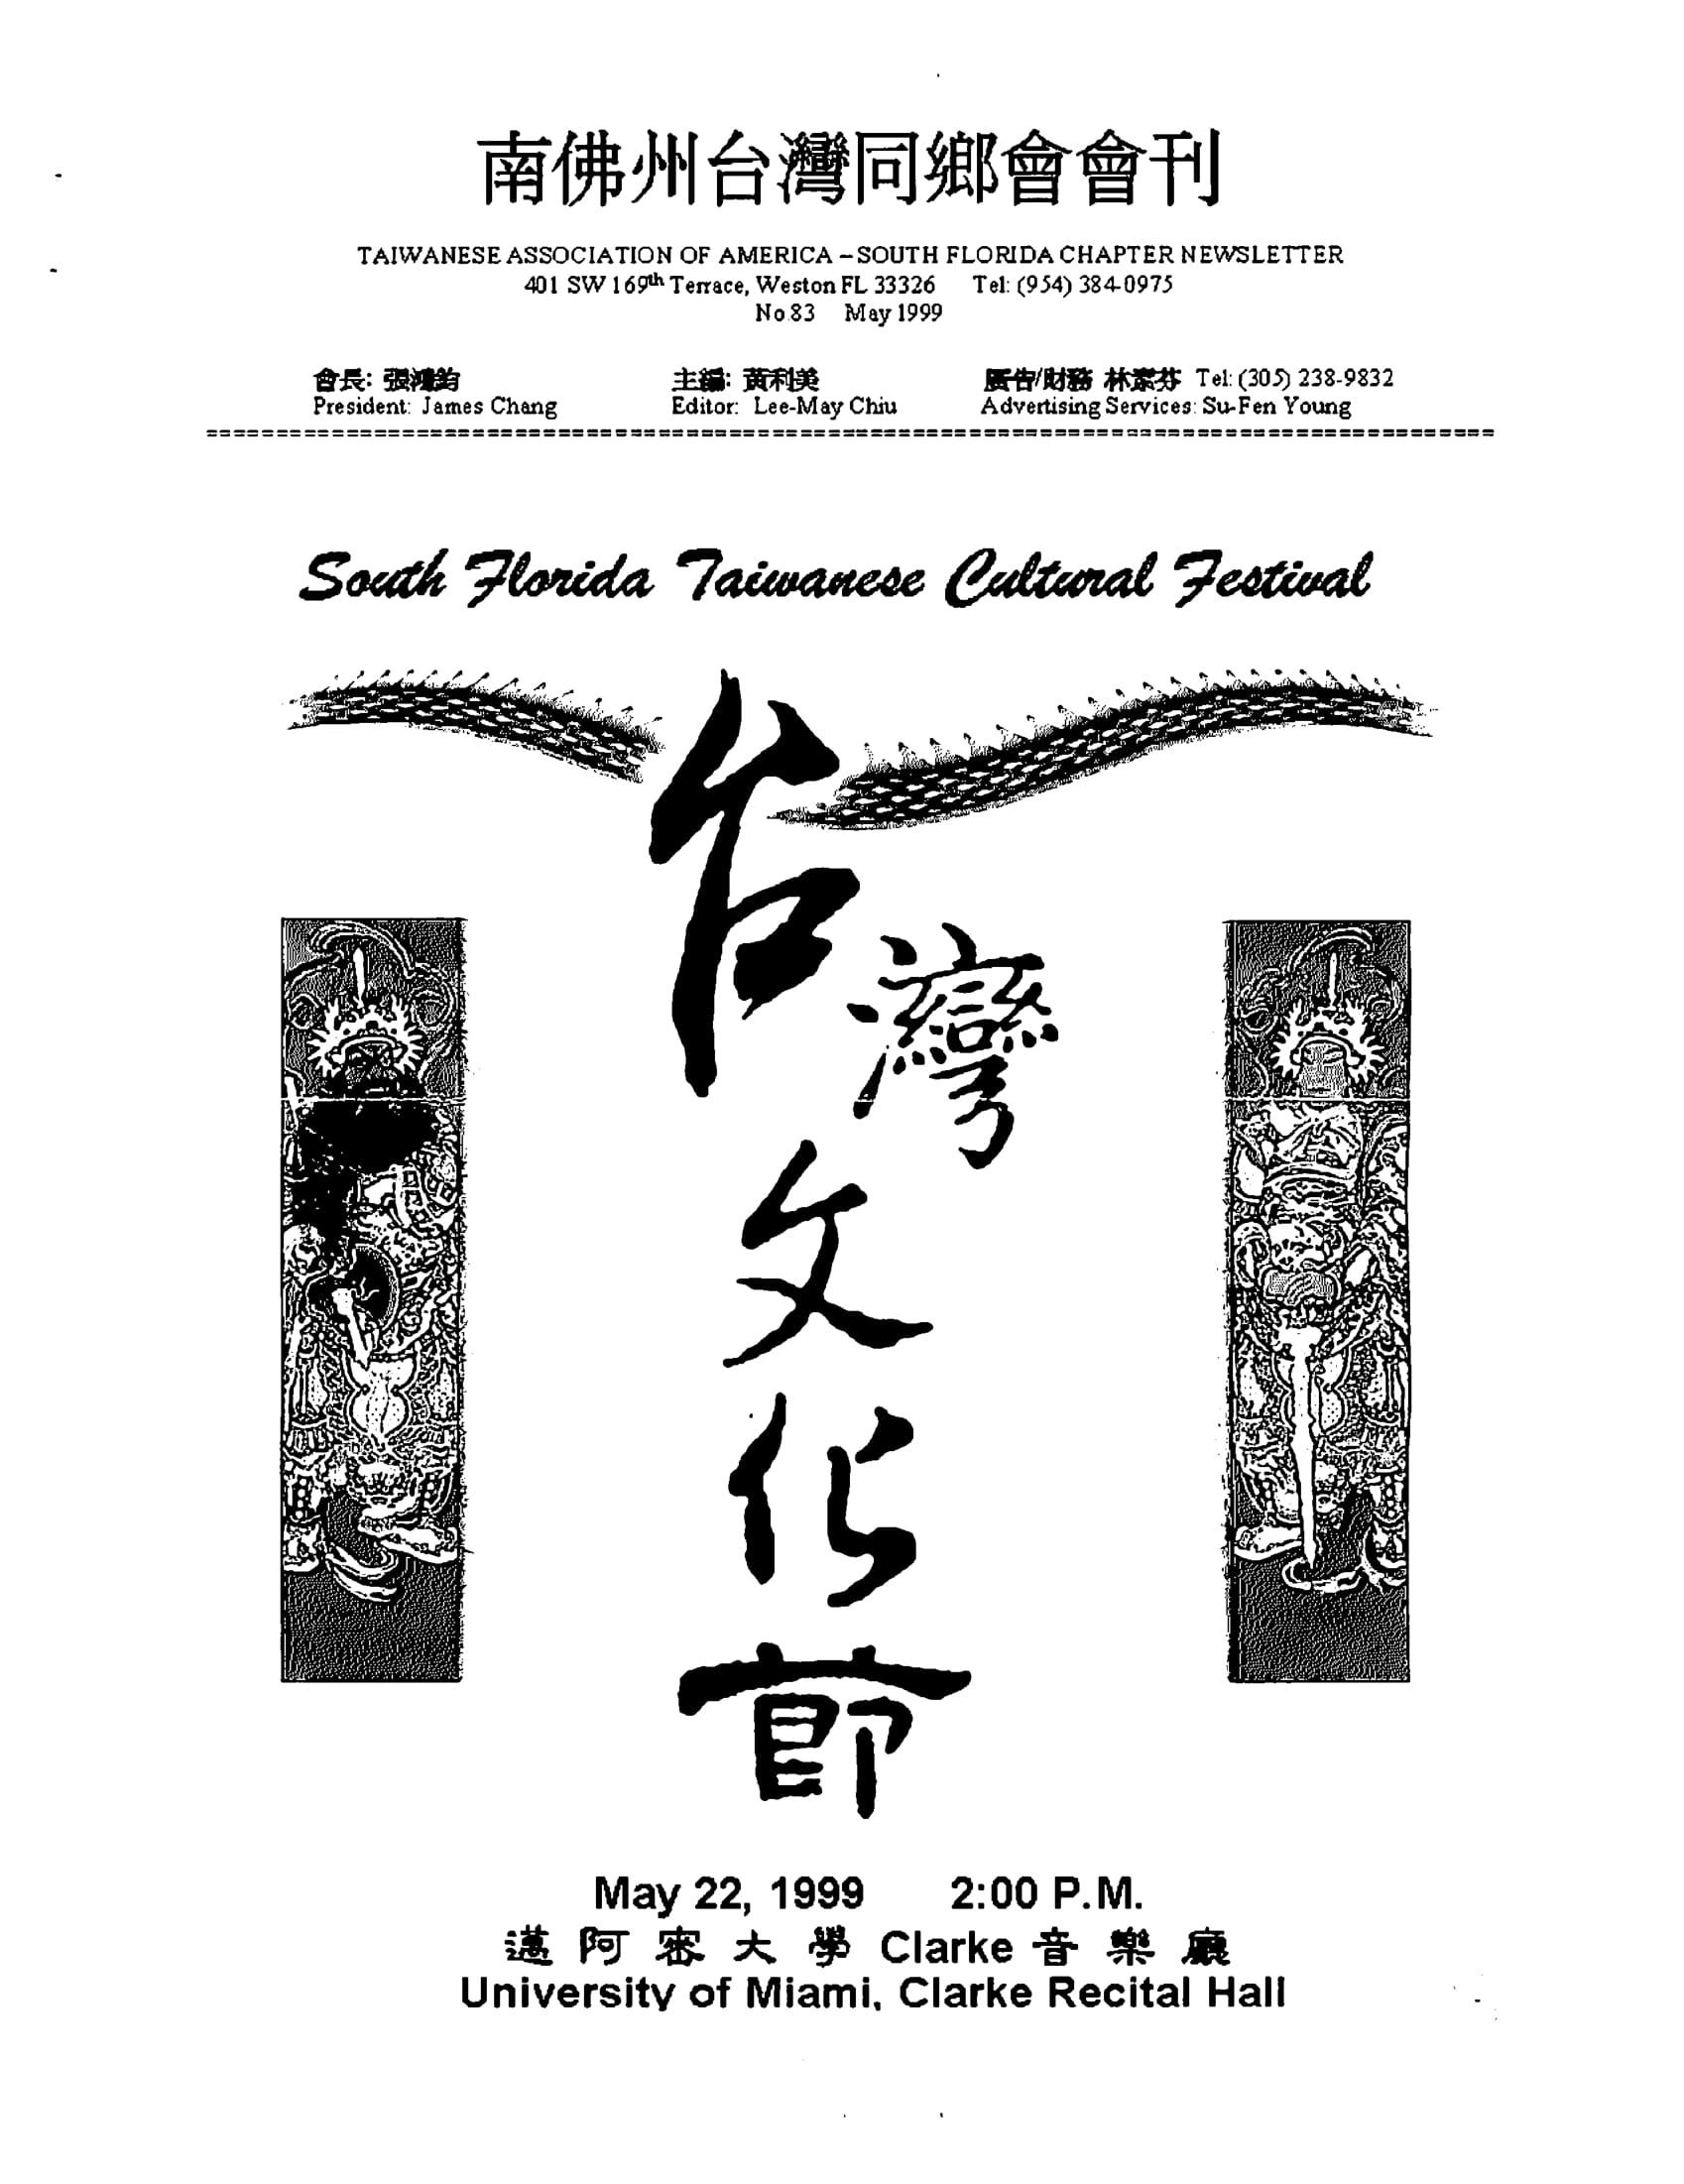 36. South Florida Taiwanese Cultural Festival/1999